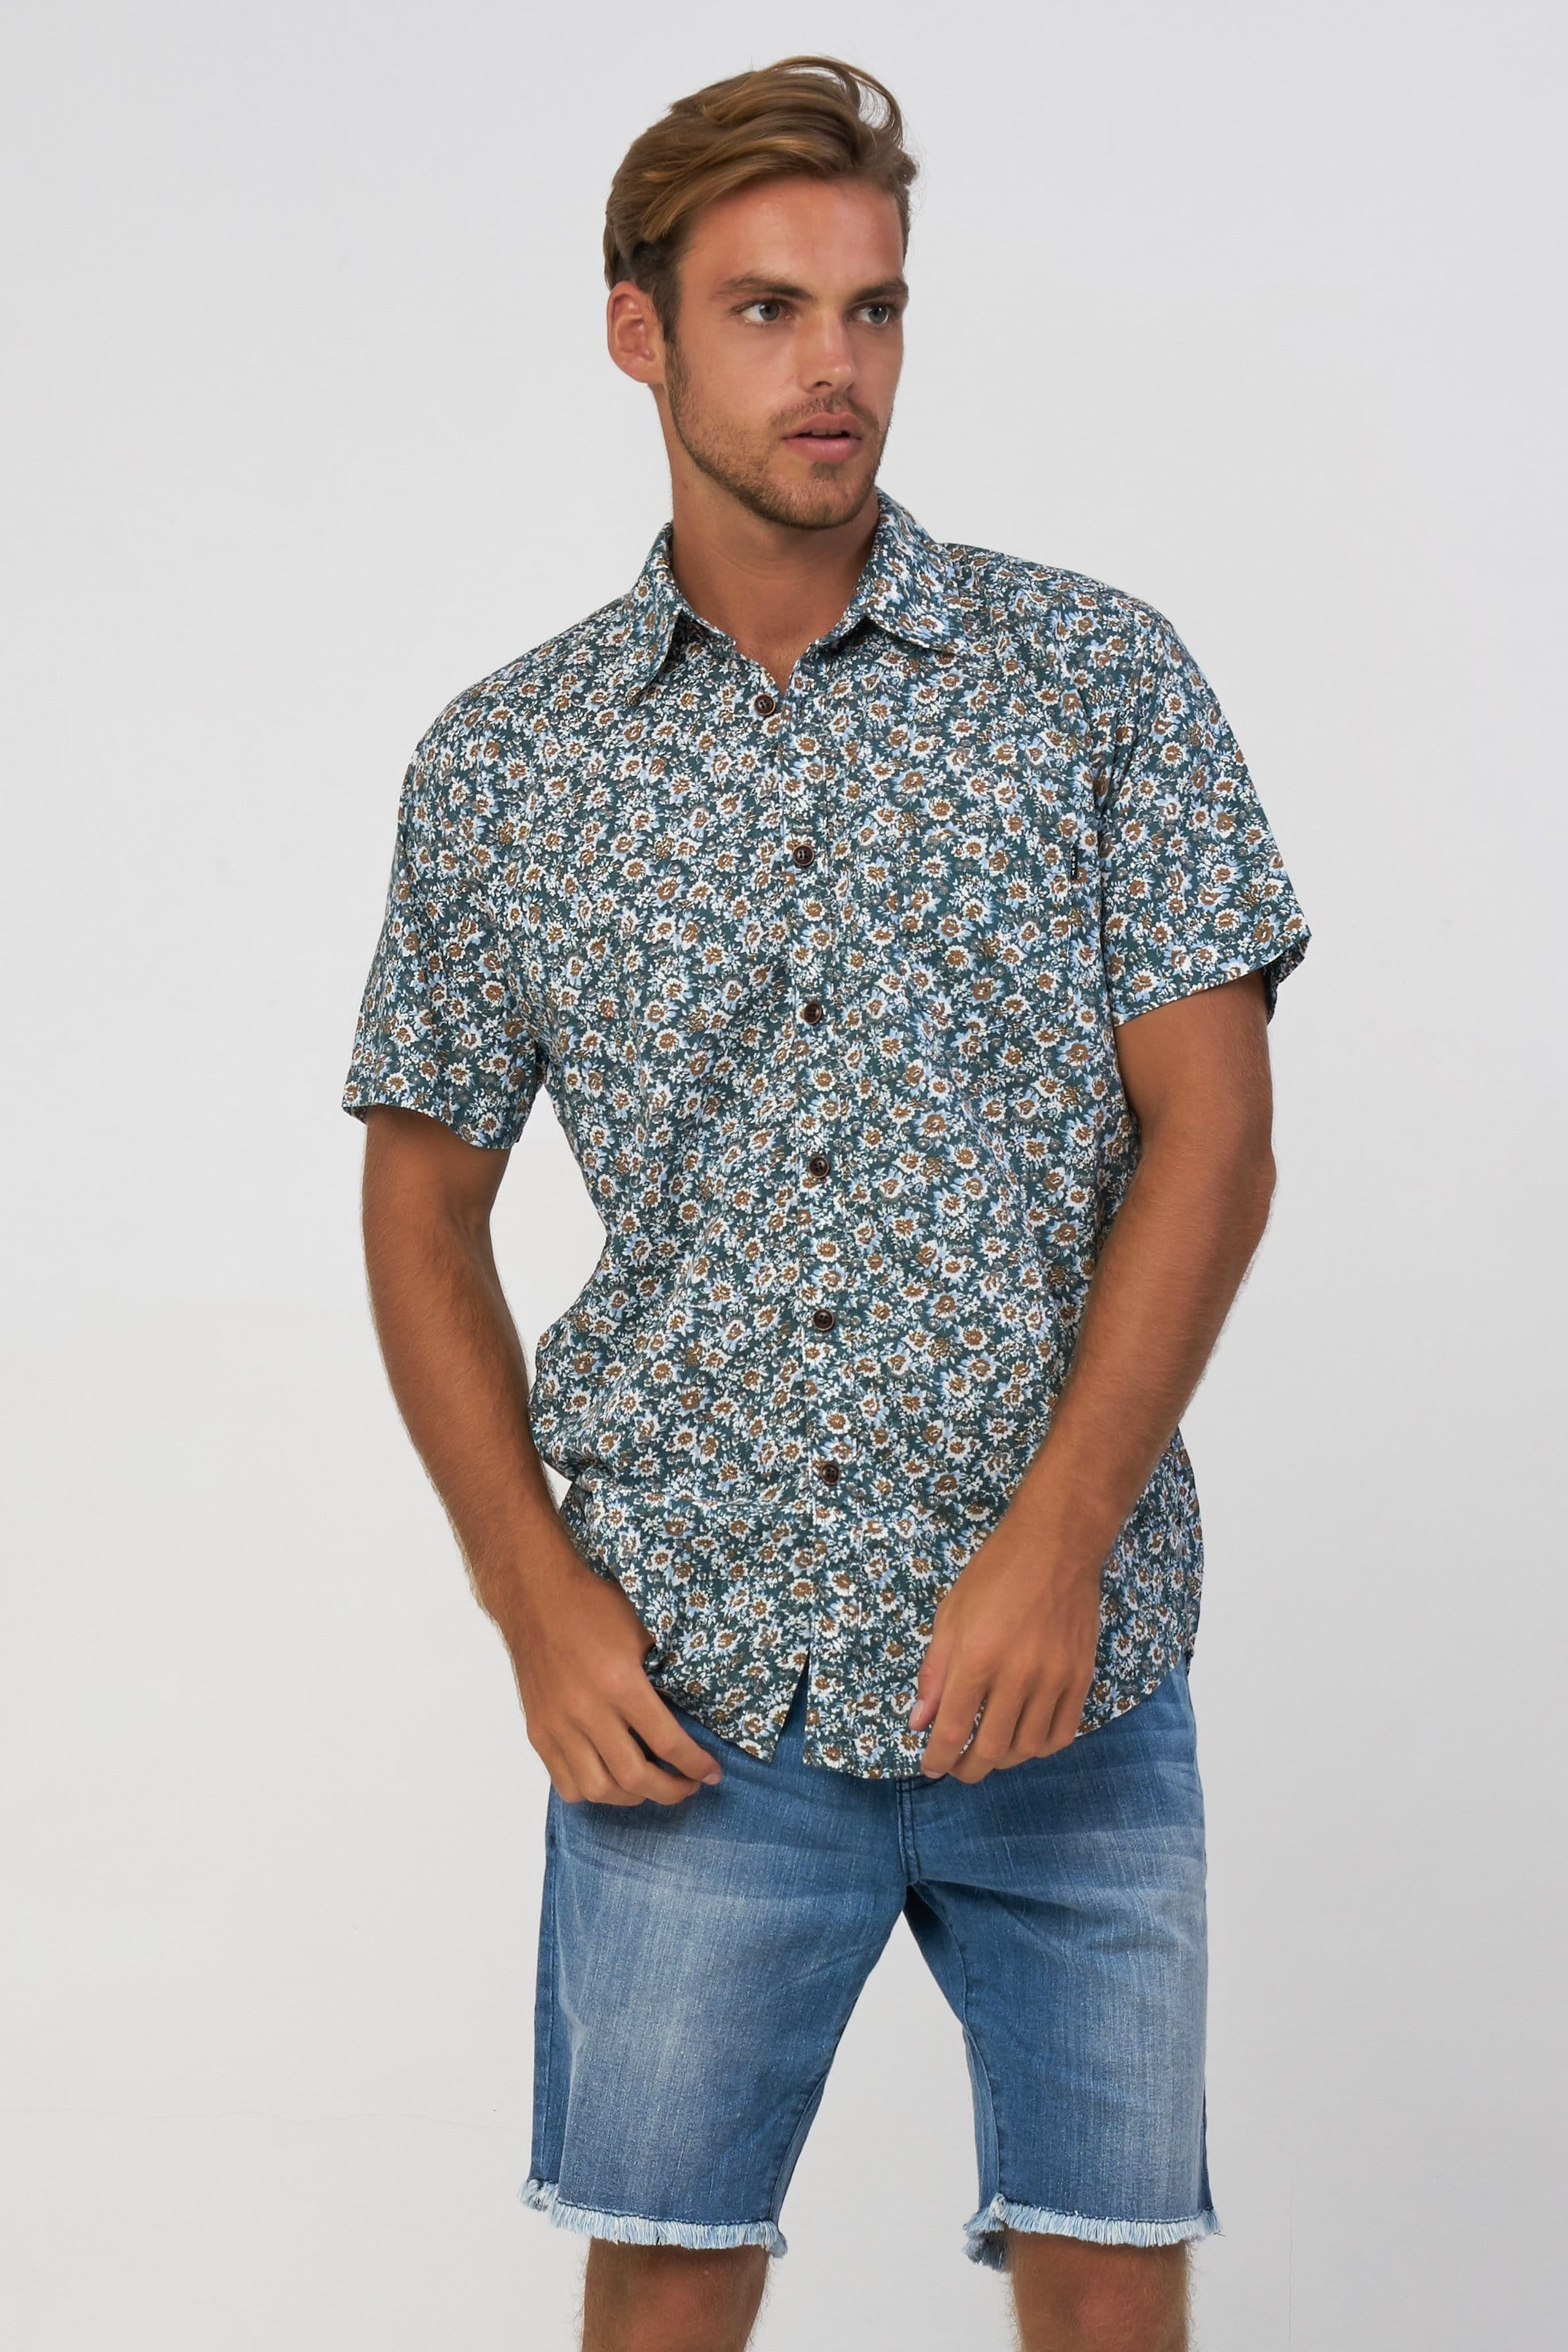 Couvy Shirt - Man Shirt - LOST IN PARADISE